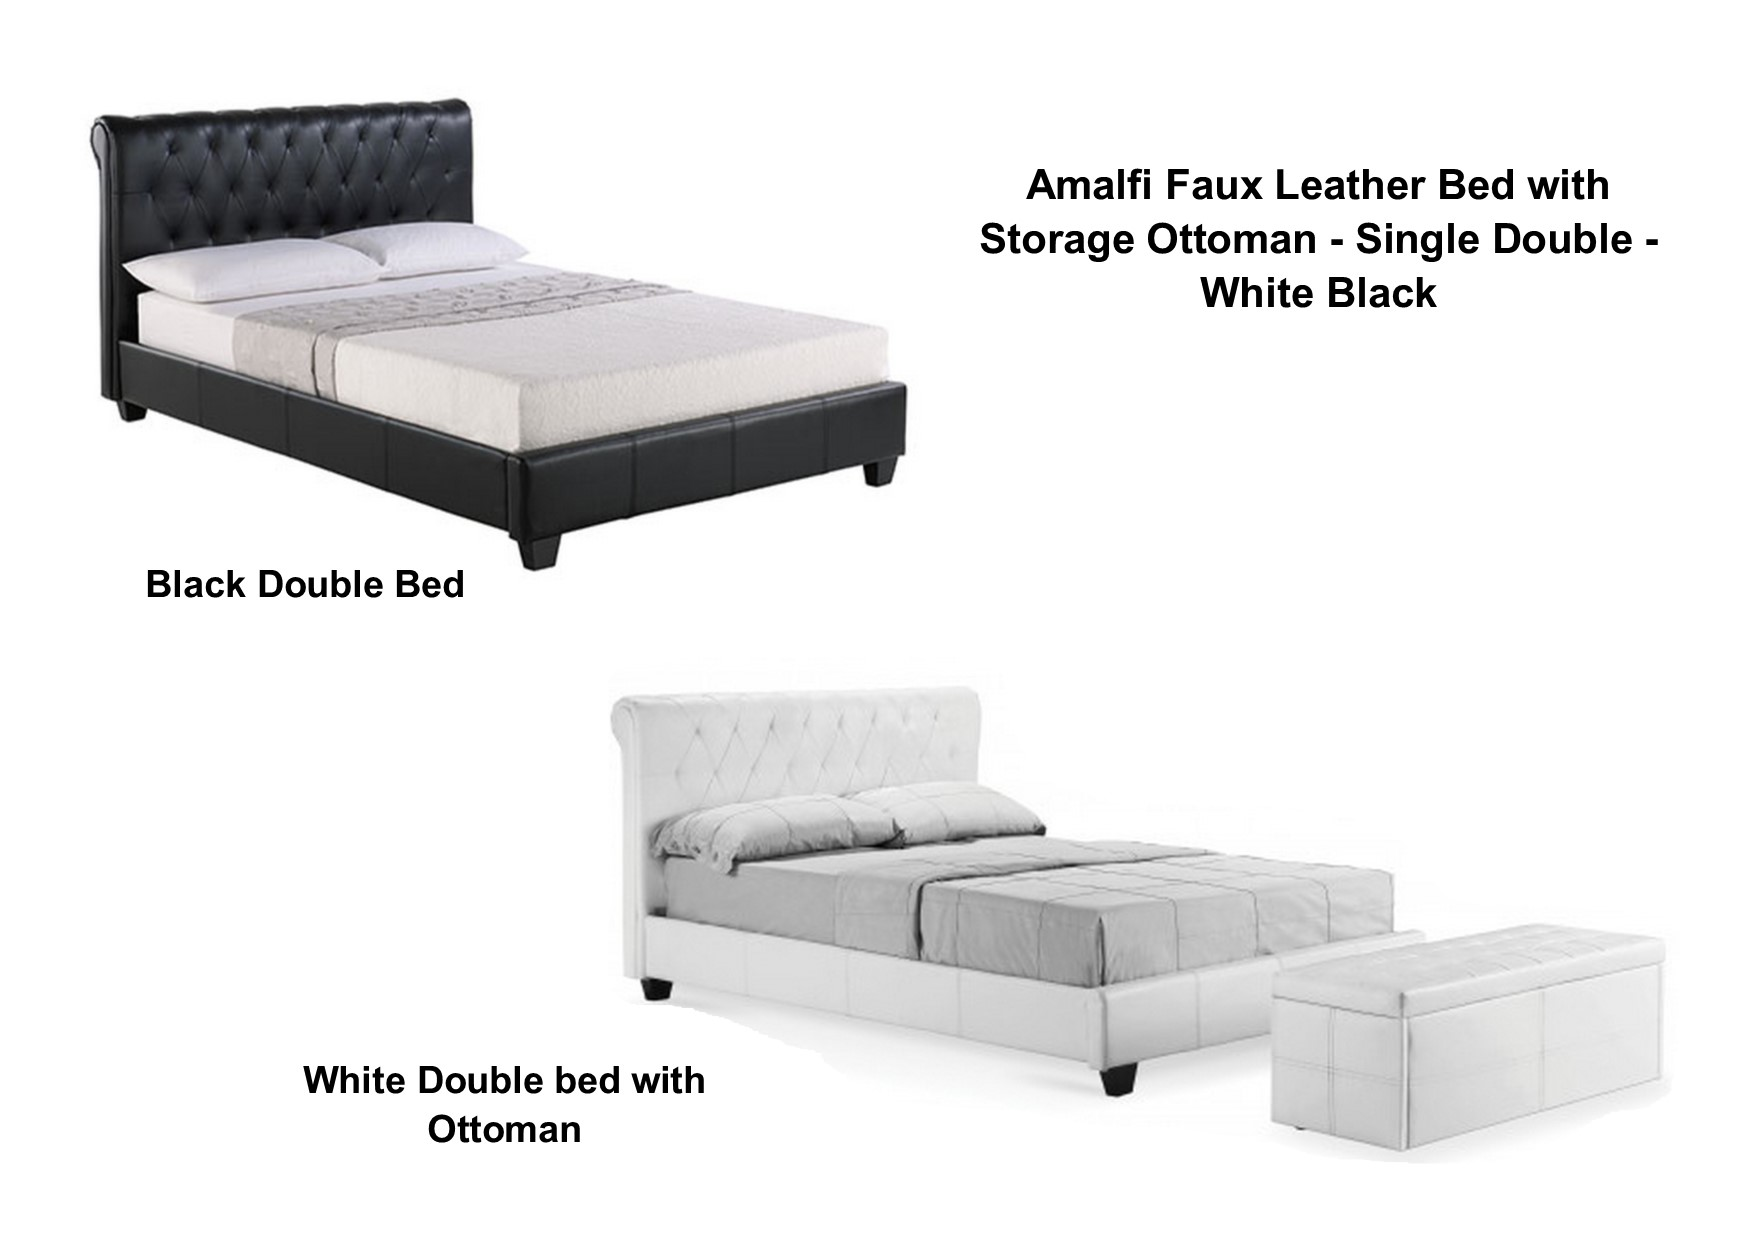 Prime Details About Amalfi Faux Leather Bed With Storage Ottoman Single Double White Black Caraccident5 Cool Chair Designs And Ideas Caraccident5Info